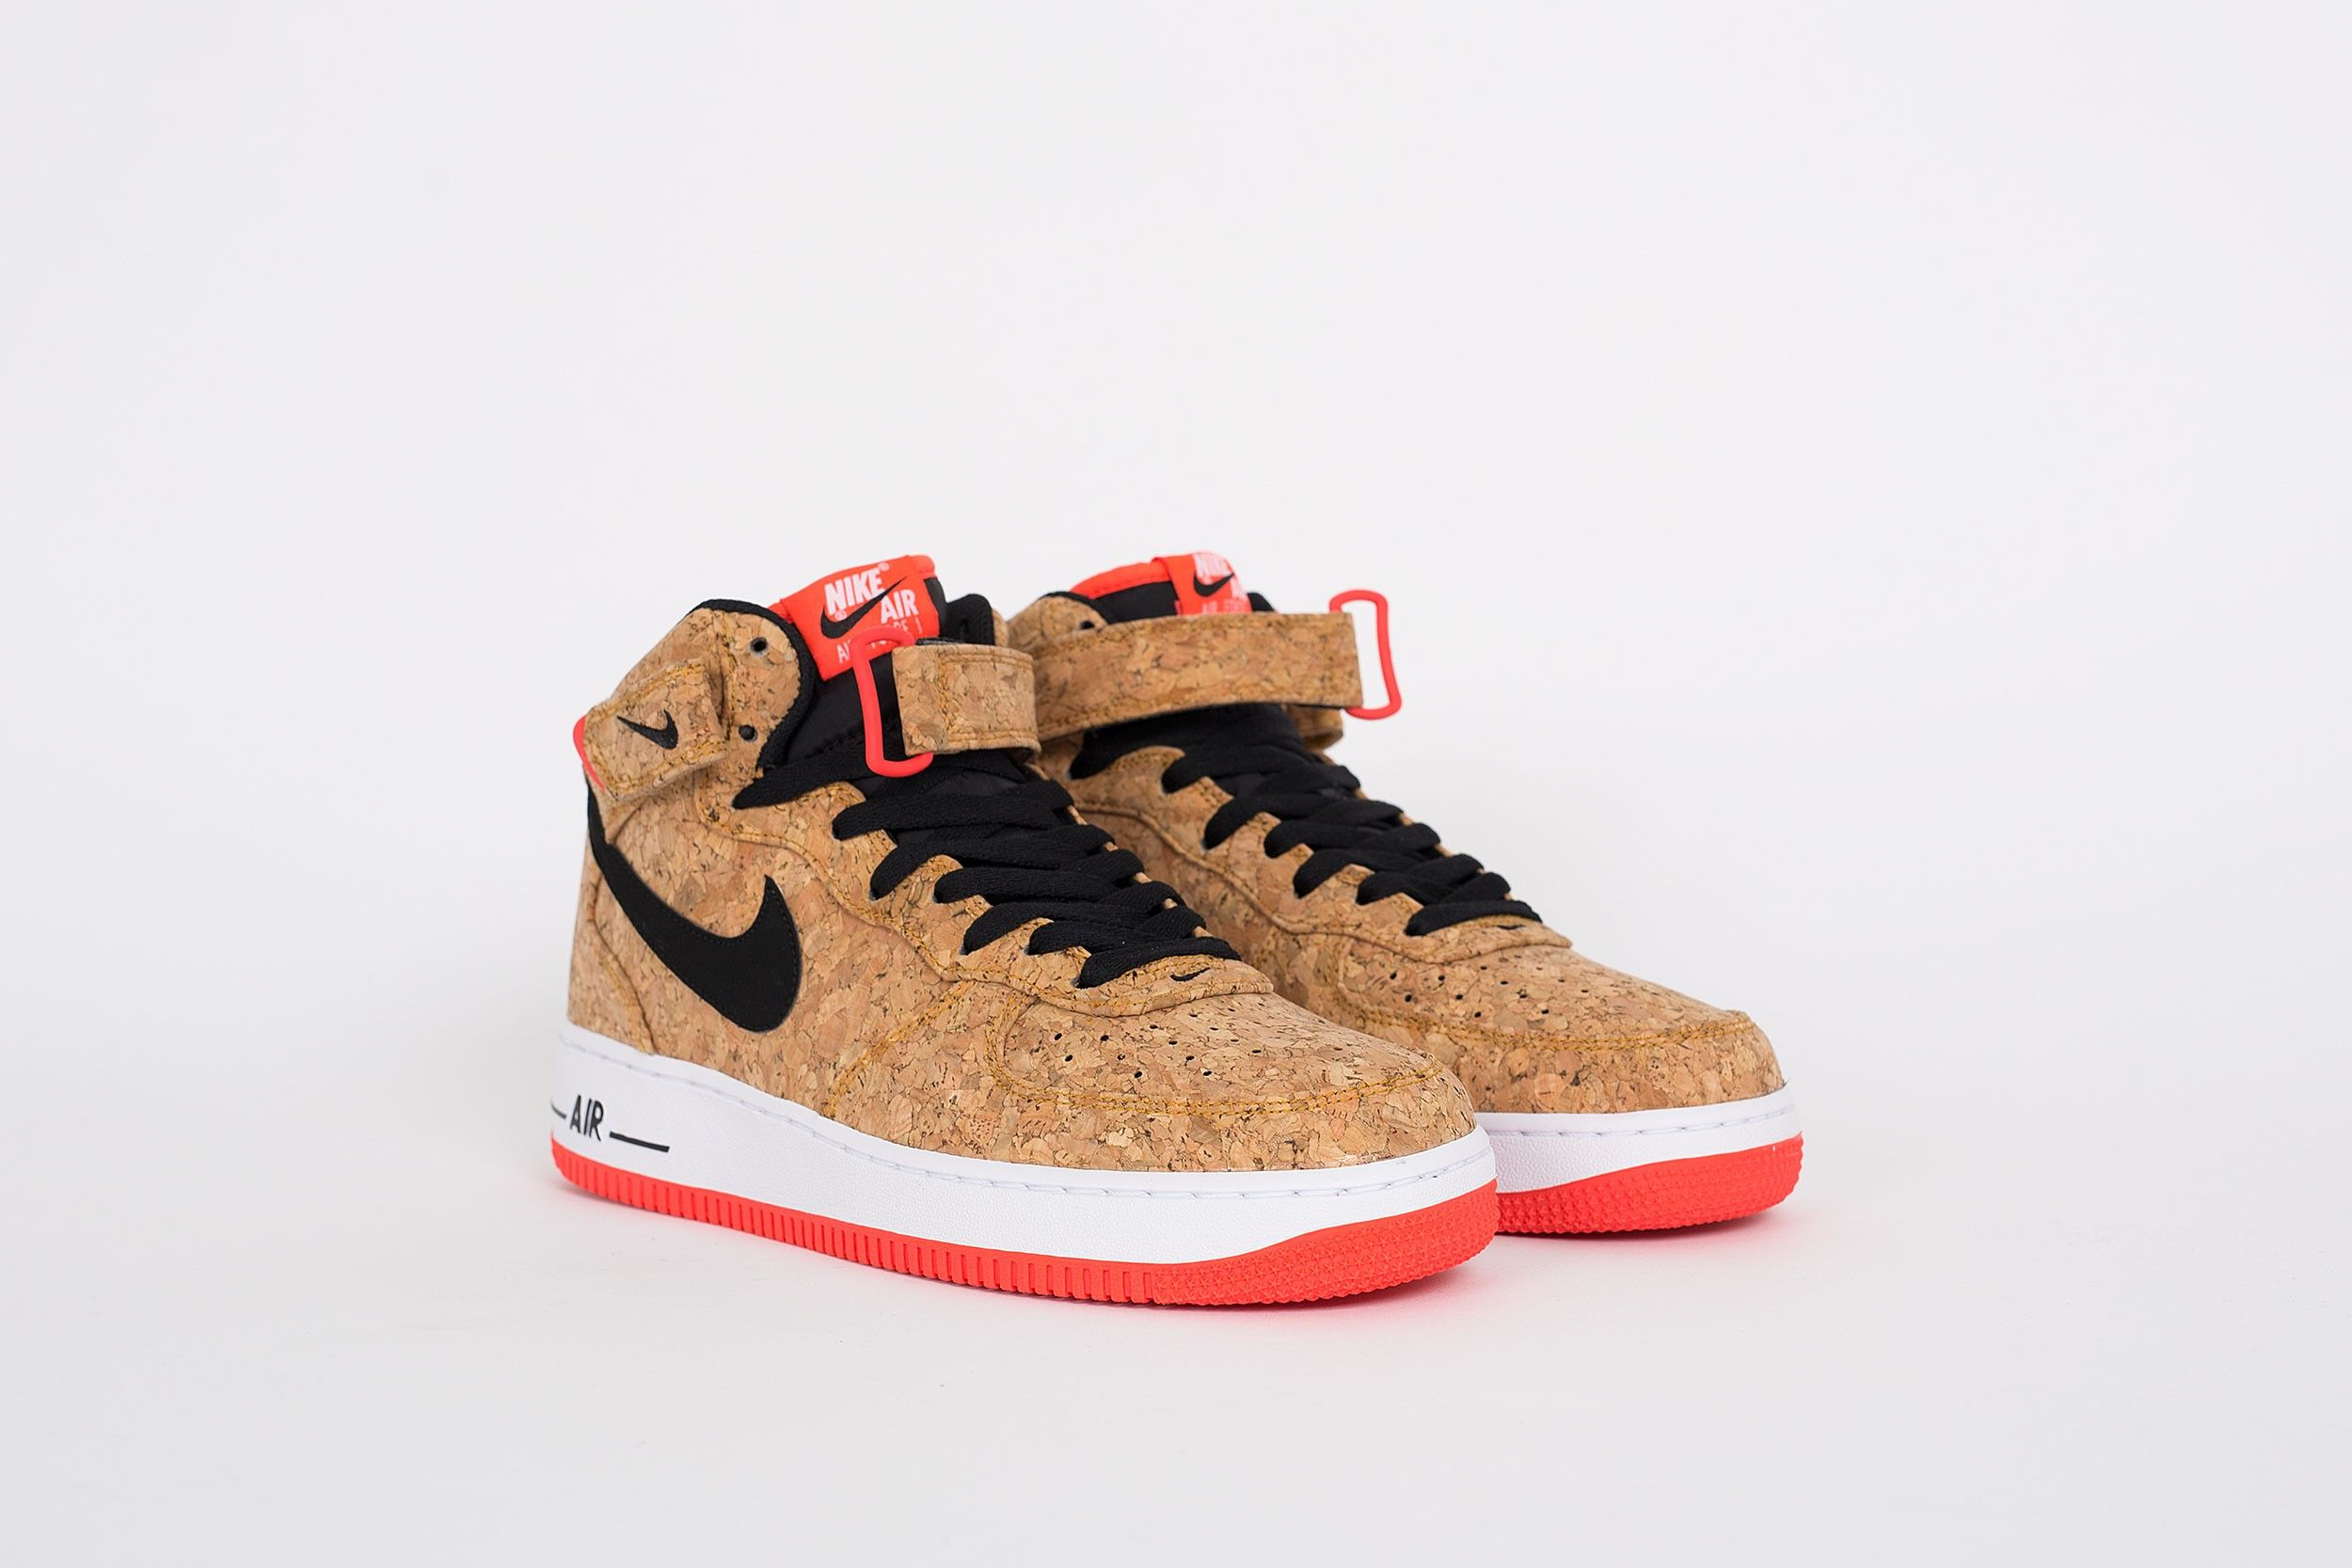 Air Force 1 Mid '07 Cork (cork/ infrared)